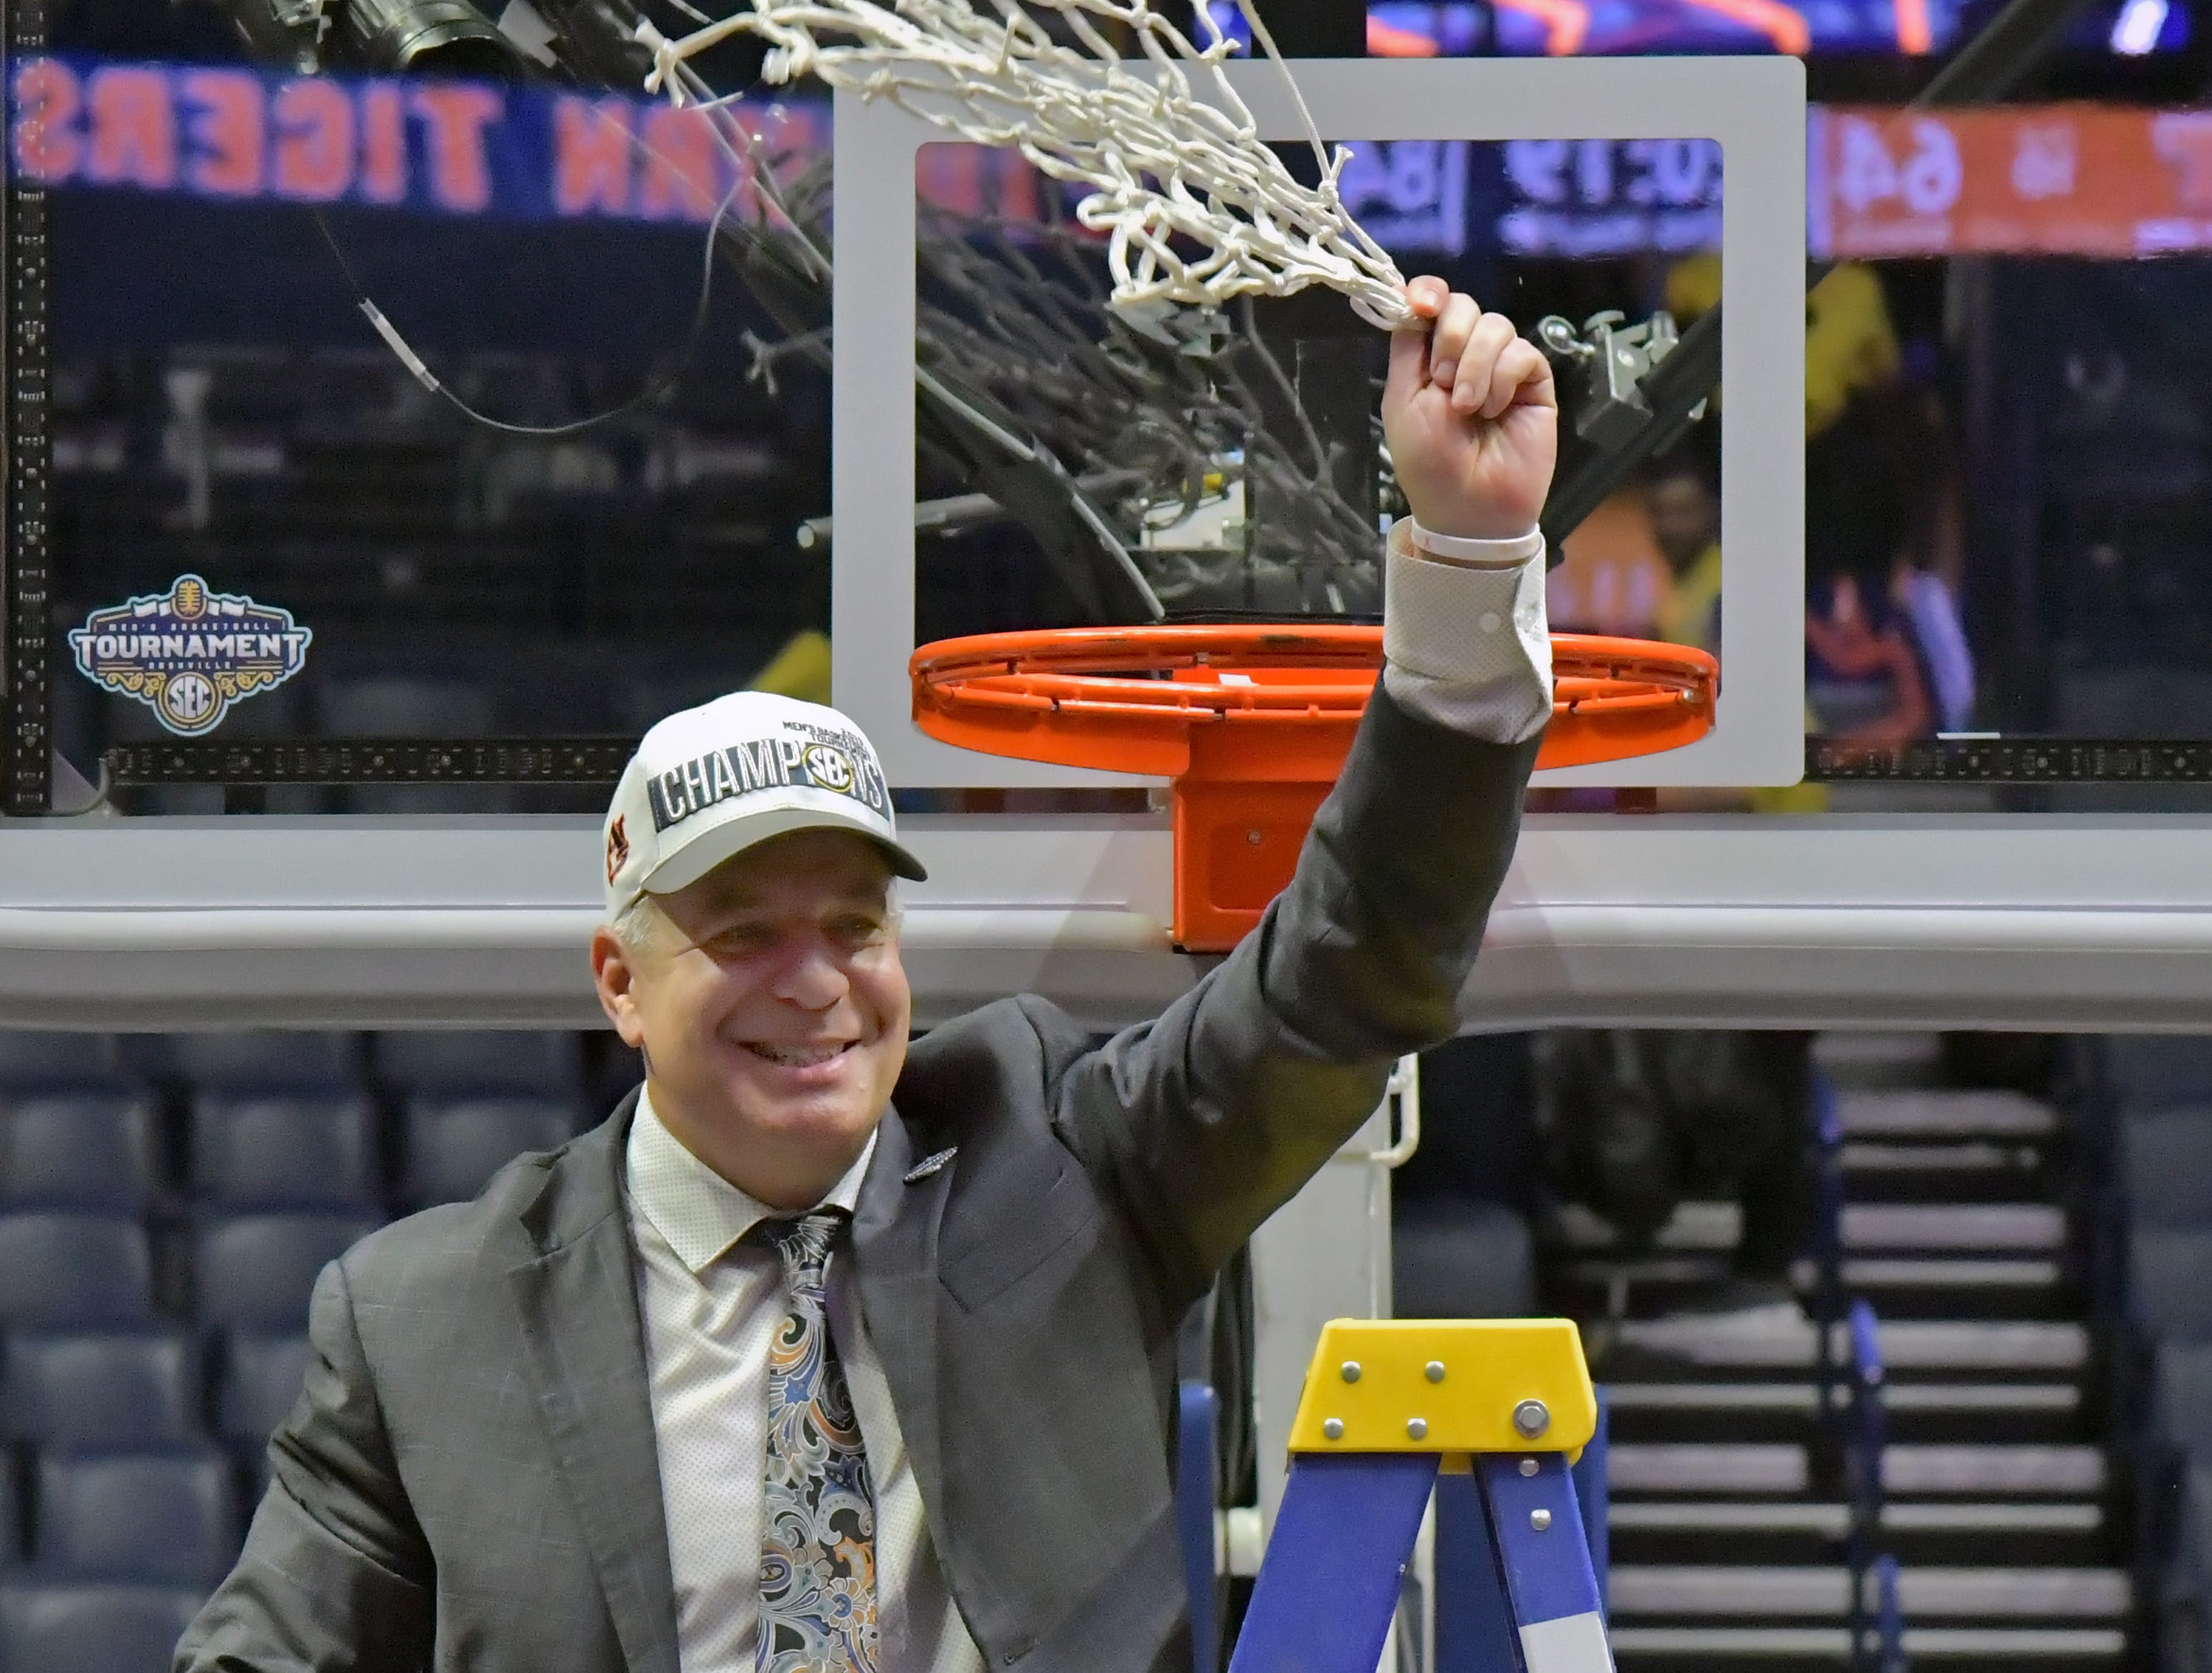 Mar 17, 2019; Nashville, TN, USA; Auburn Tigers head coach Bruce Pearl cuts down the net and waves toward fans following the championship game between the Tennessee Volunteers and the Auburn Tigers  in the SEC conference tournament at Bridgestone Arena. Auburn won 84-64. Mandatory Credit: Jim Brown-USA TODAY Sports